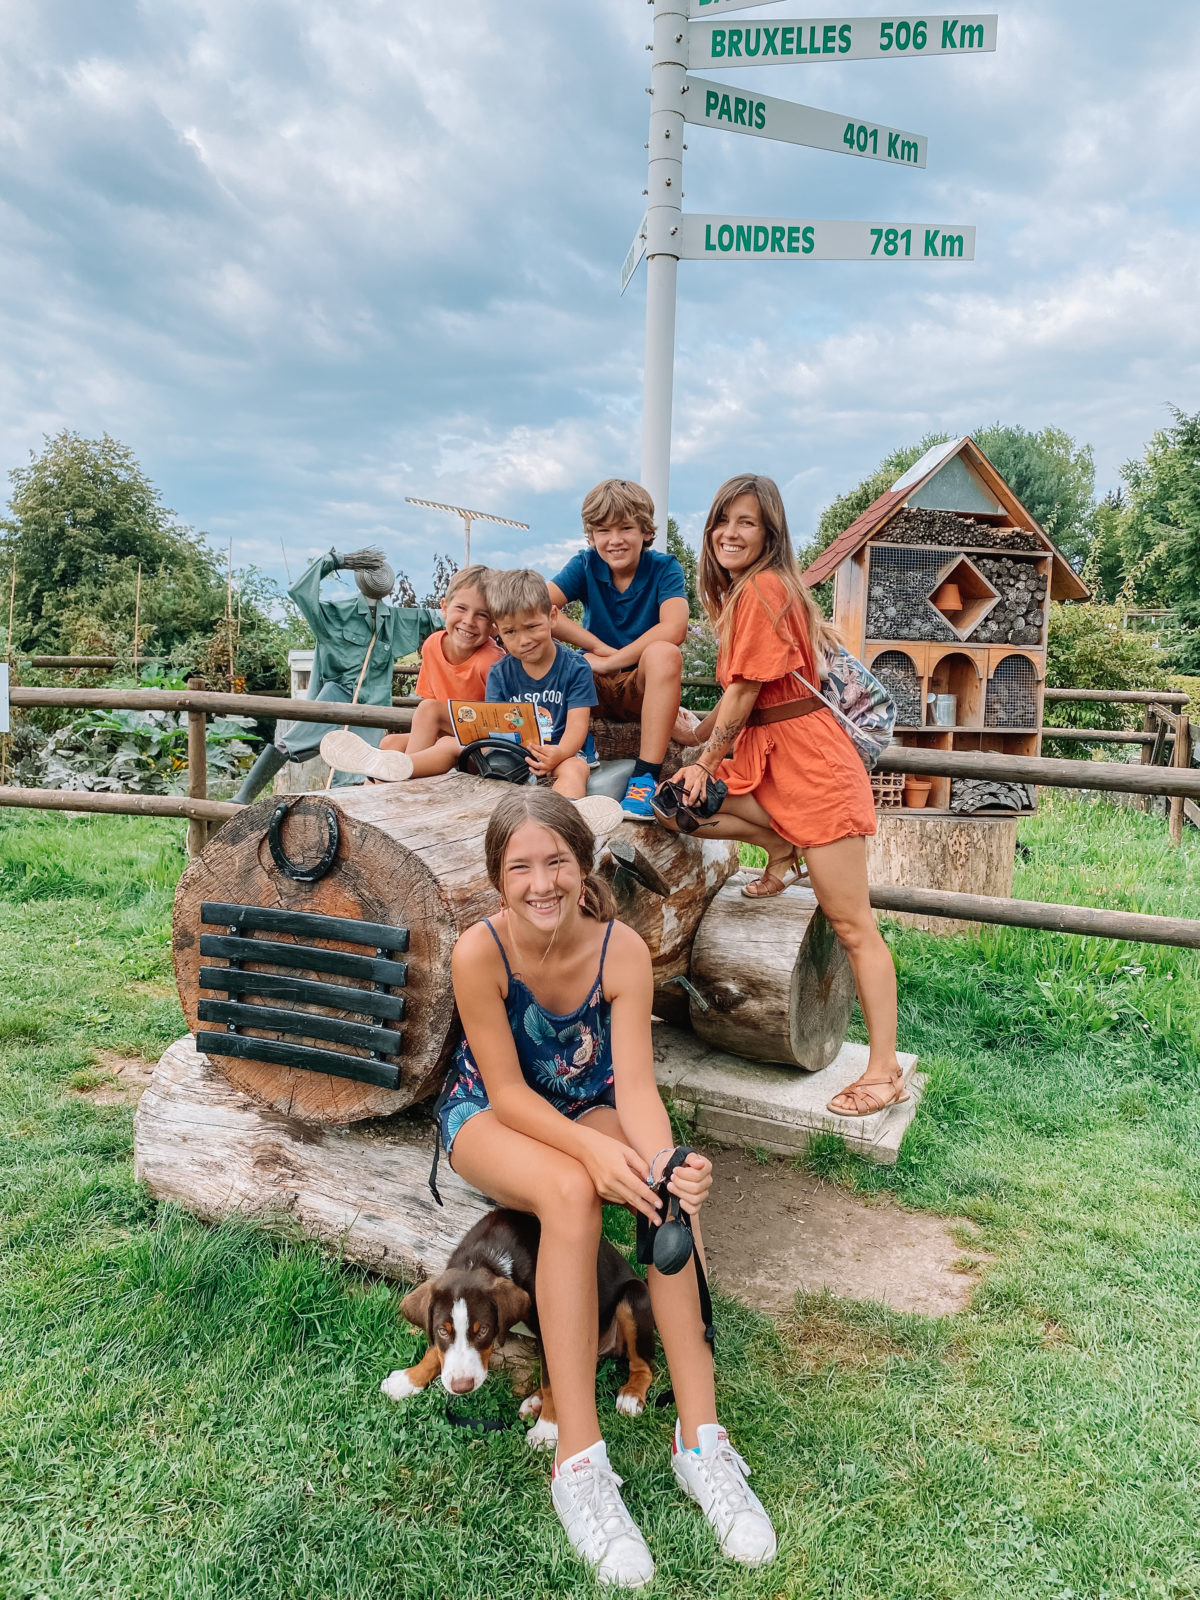 bougy thereseandthekids blog famille suisse